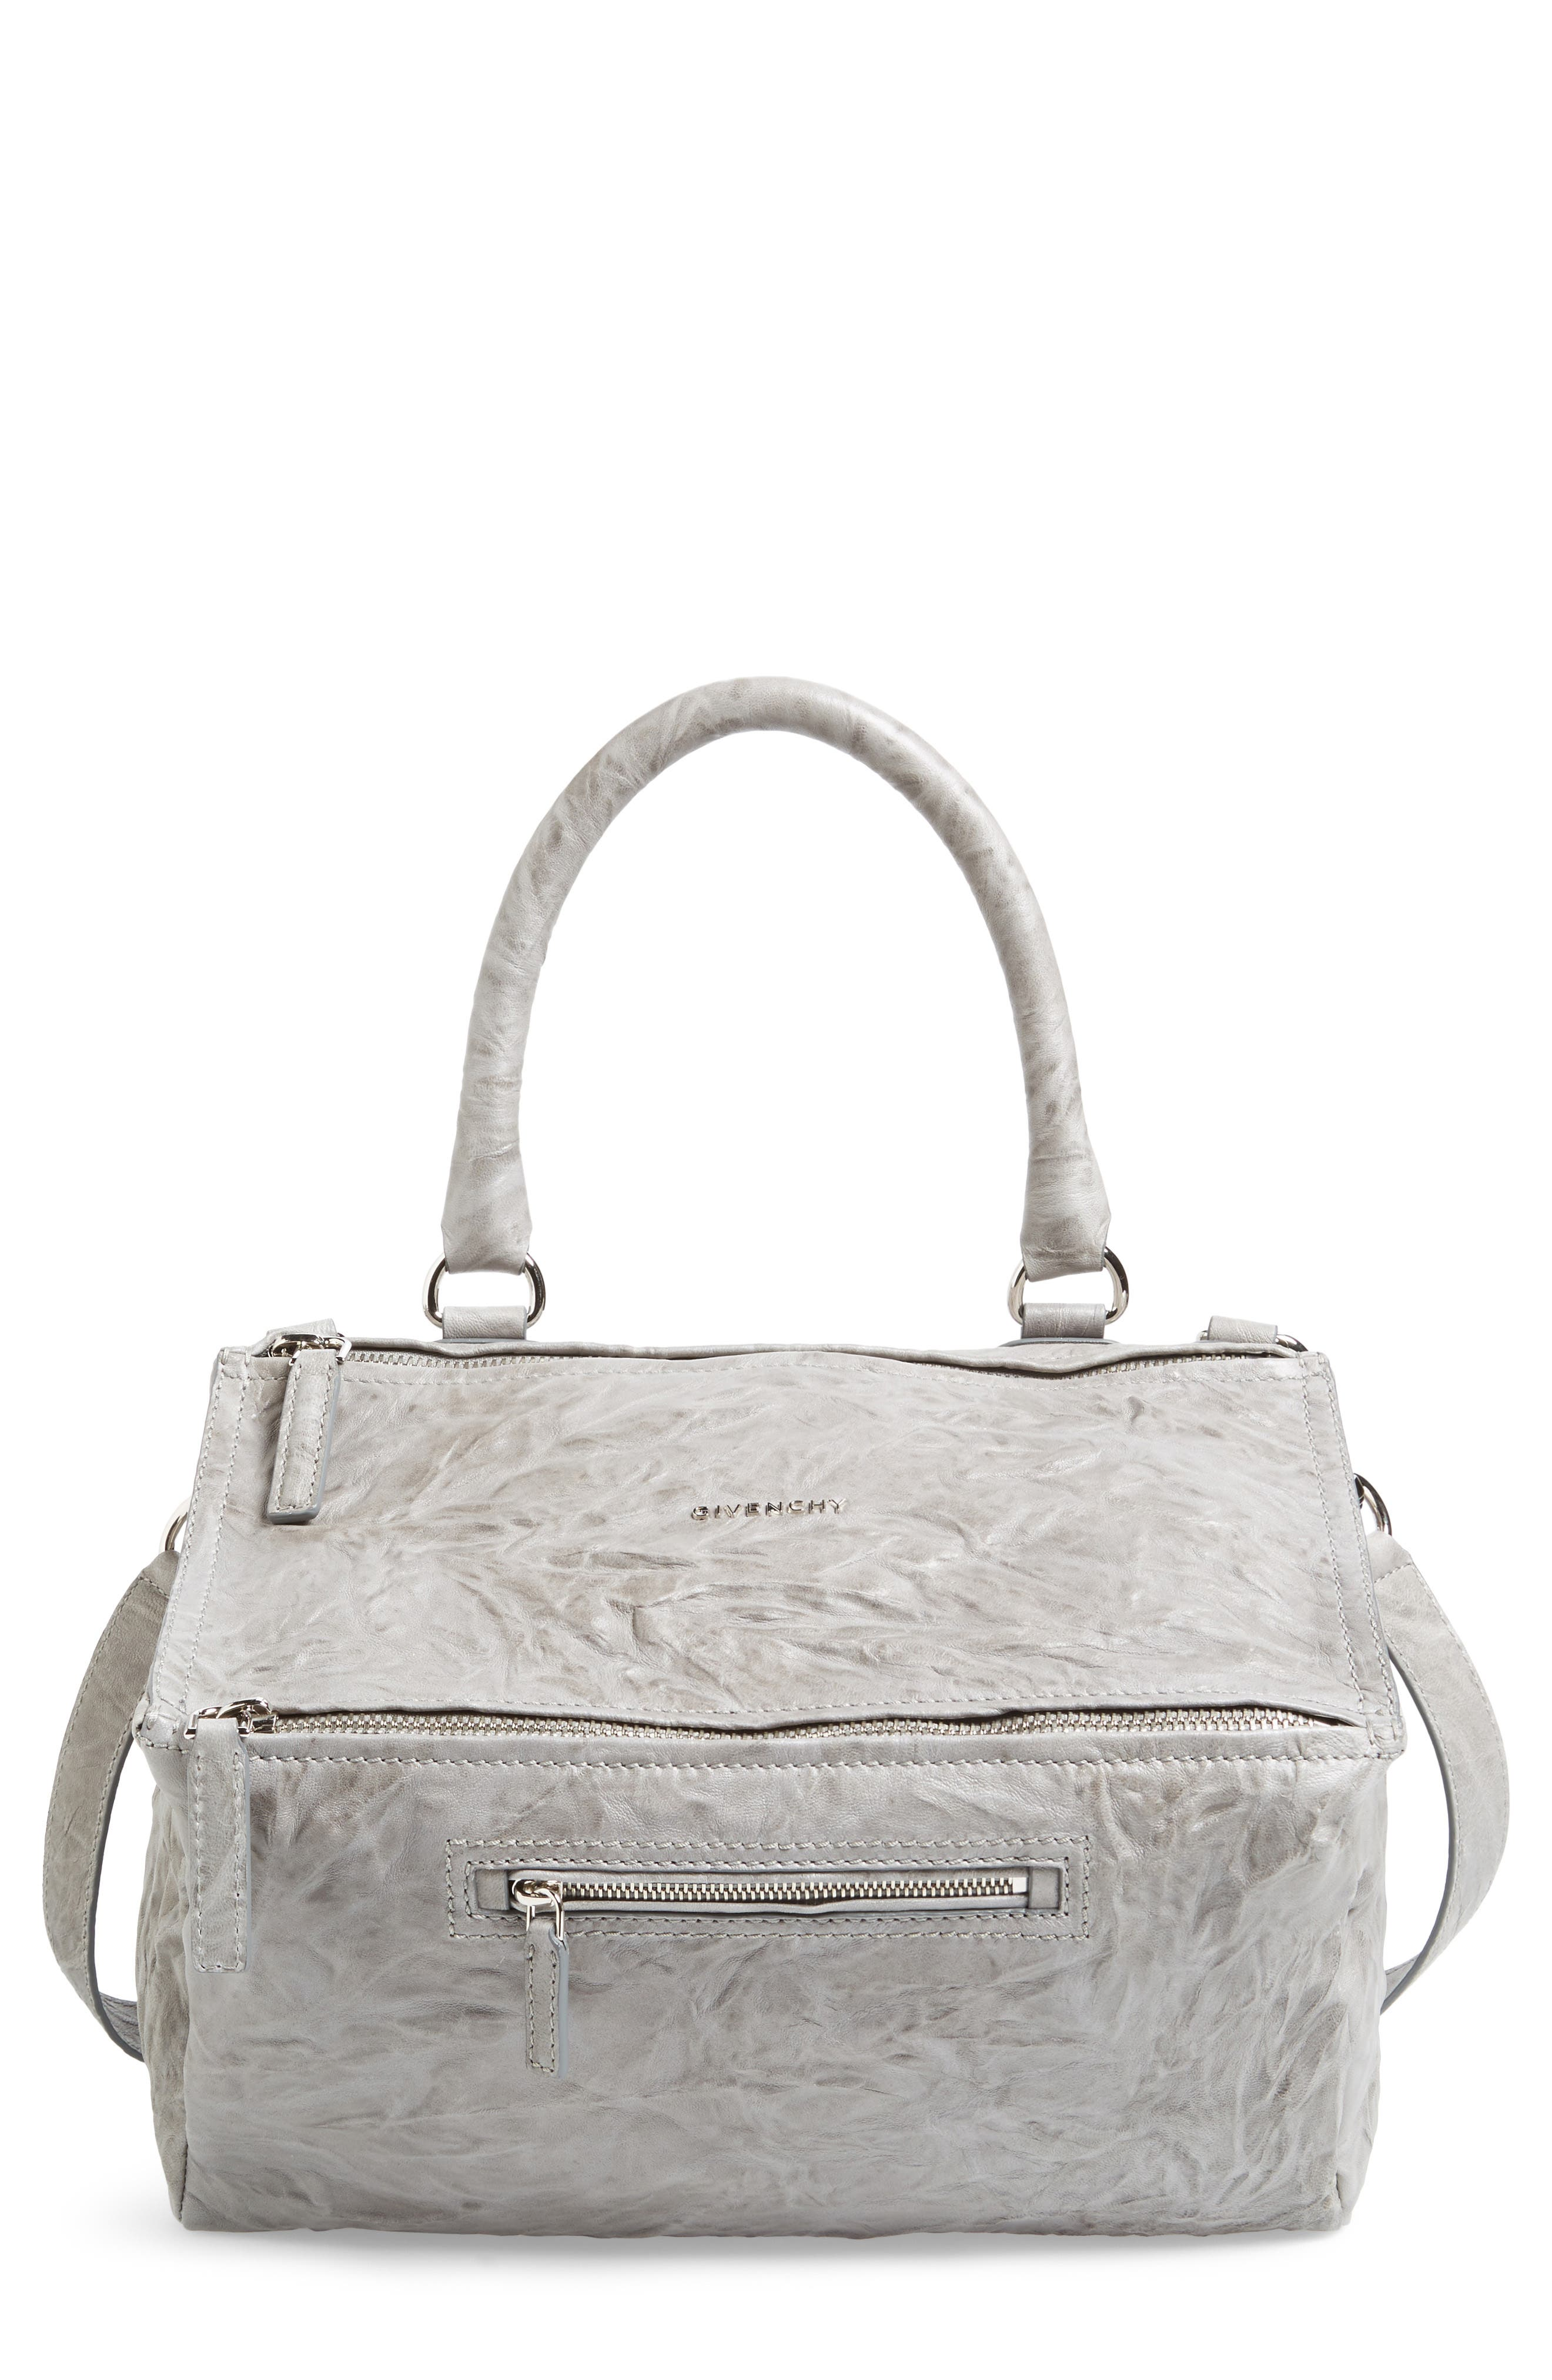 'Medium Pepe Pandora' Leather Satchel,                             Main thumbnail 1, color,                             PEARL GREY